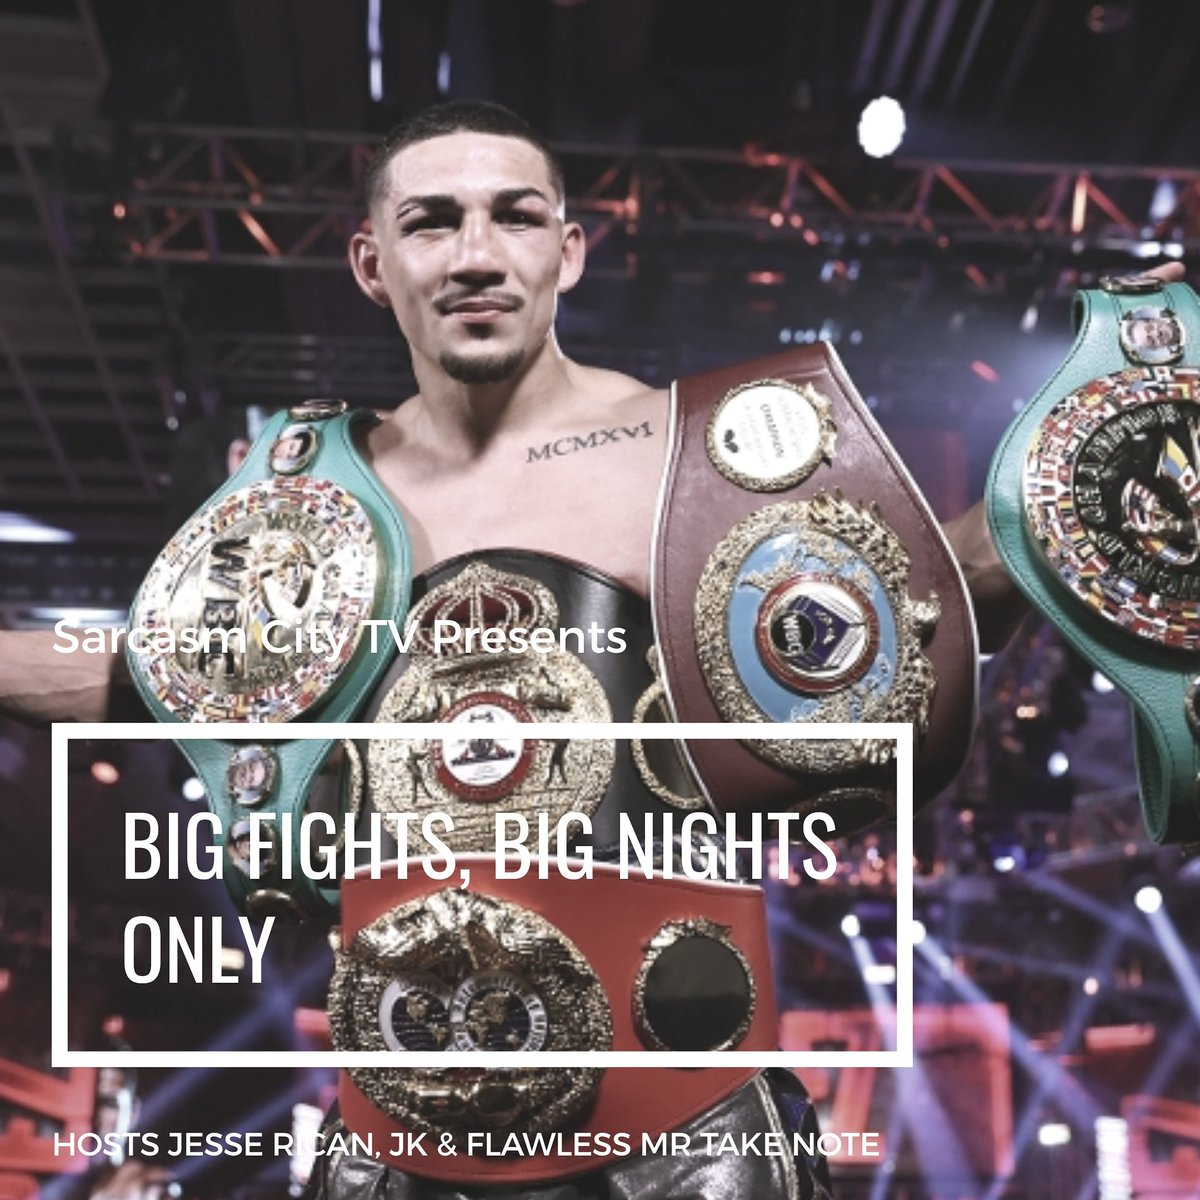 LOMACHENKO VS LOPEZ RECAP - The Big Fights, Big Nights Only Show   Hosted By @ThatsMeFlawless & JK (@thekarlfam)  https://t.co/mkCp5embYn  #LomaLopez #LomachenkoLopez #LomavsLopez https://t.co/XcsgvWM1HV